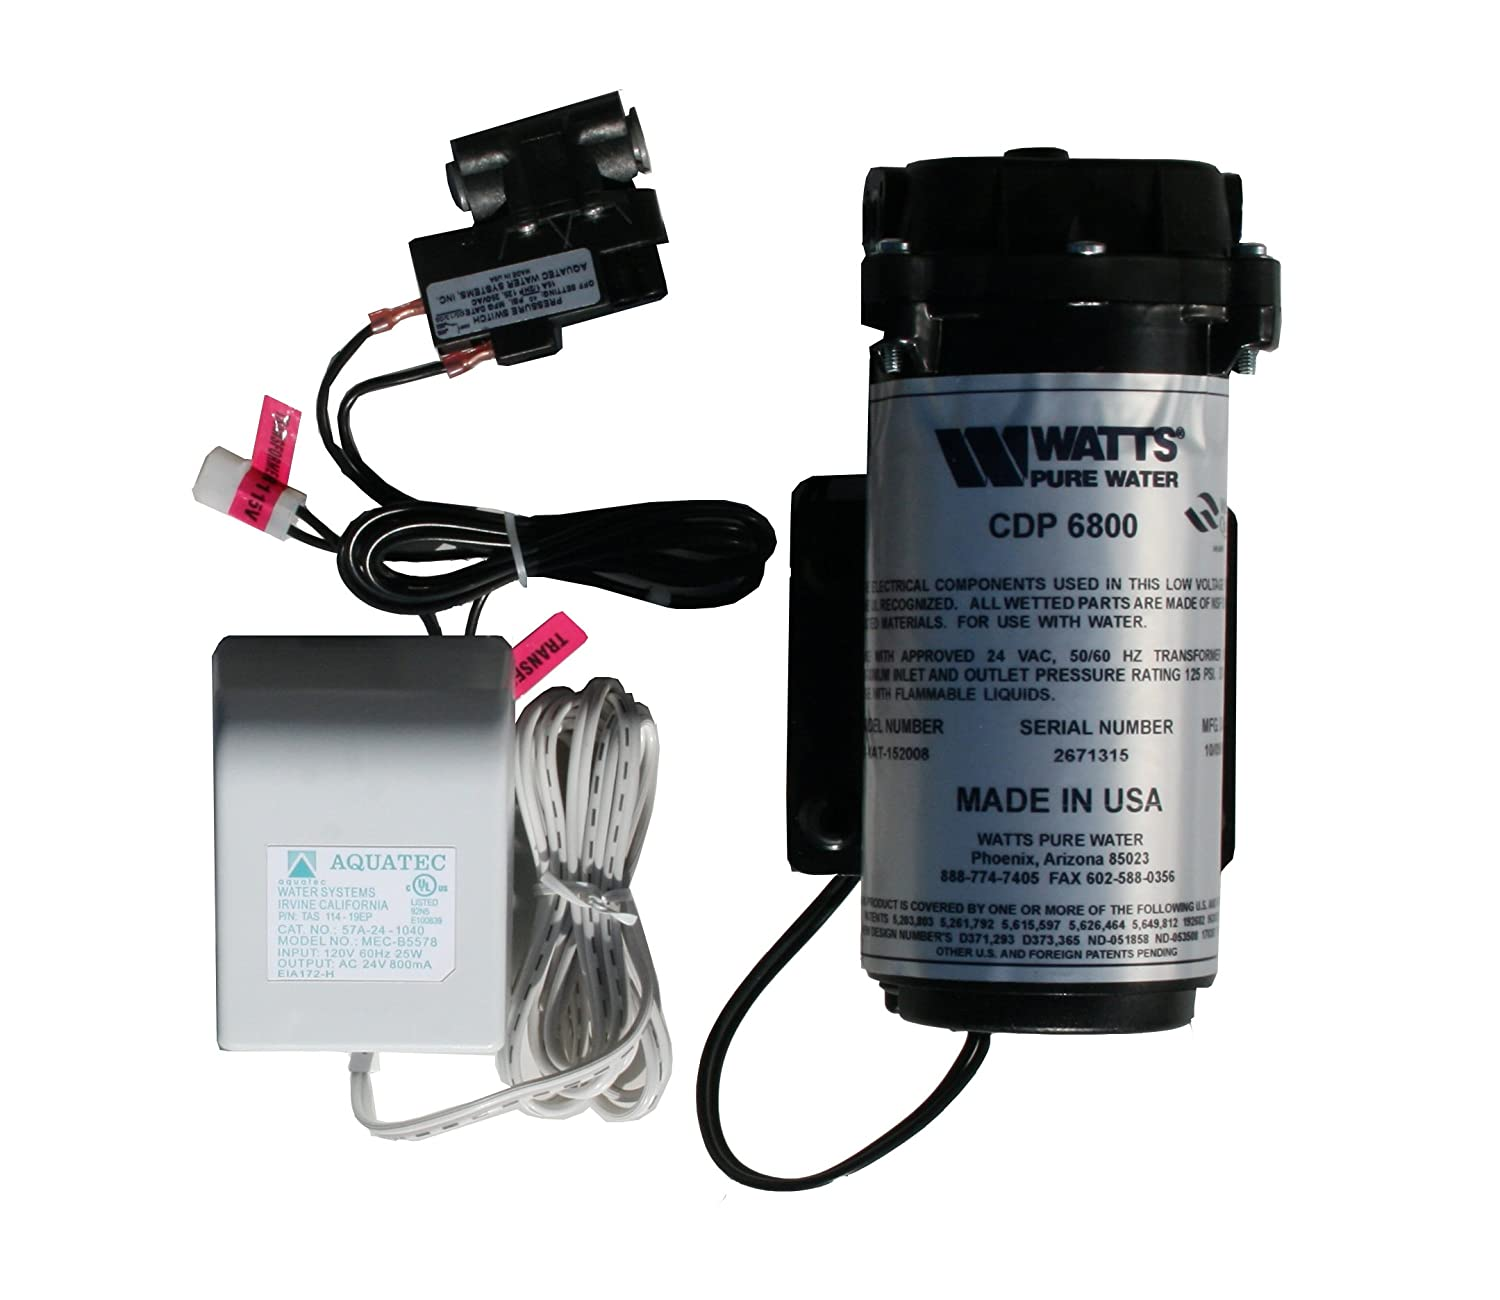 Watts Premier 560043 RO Booster Pump Kit Reviews